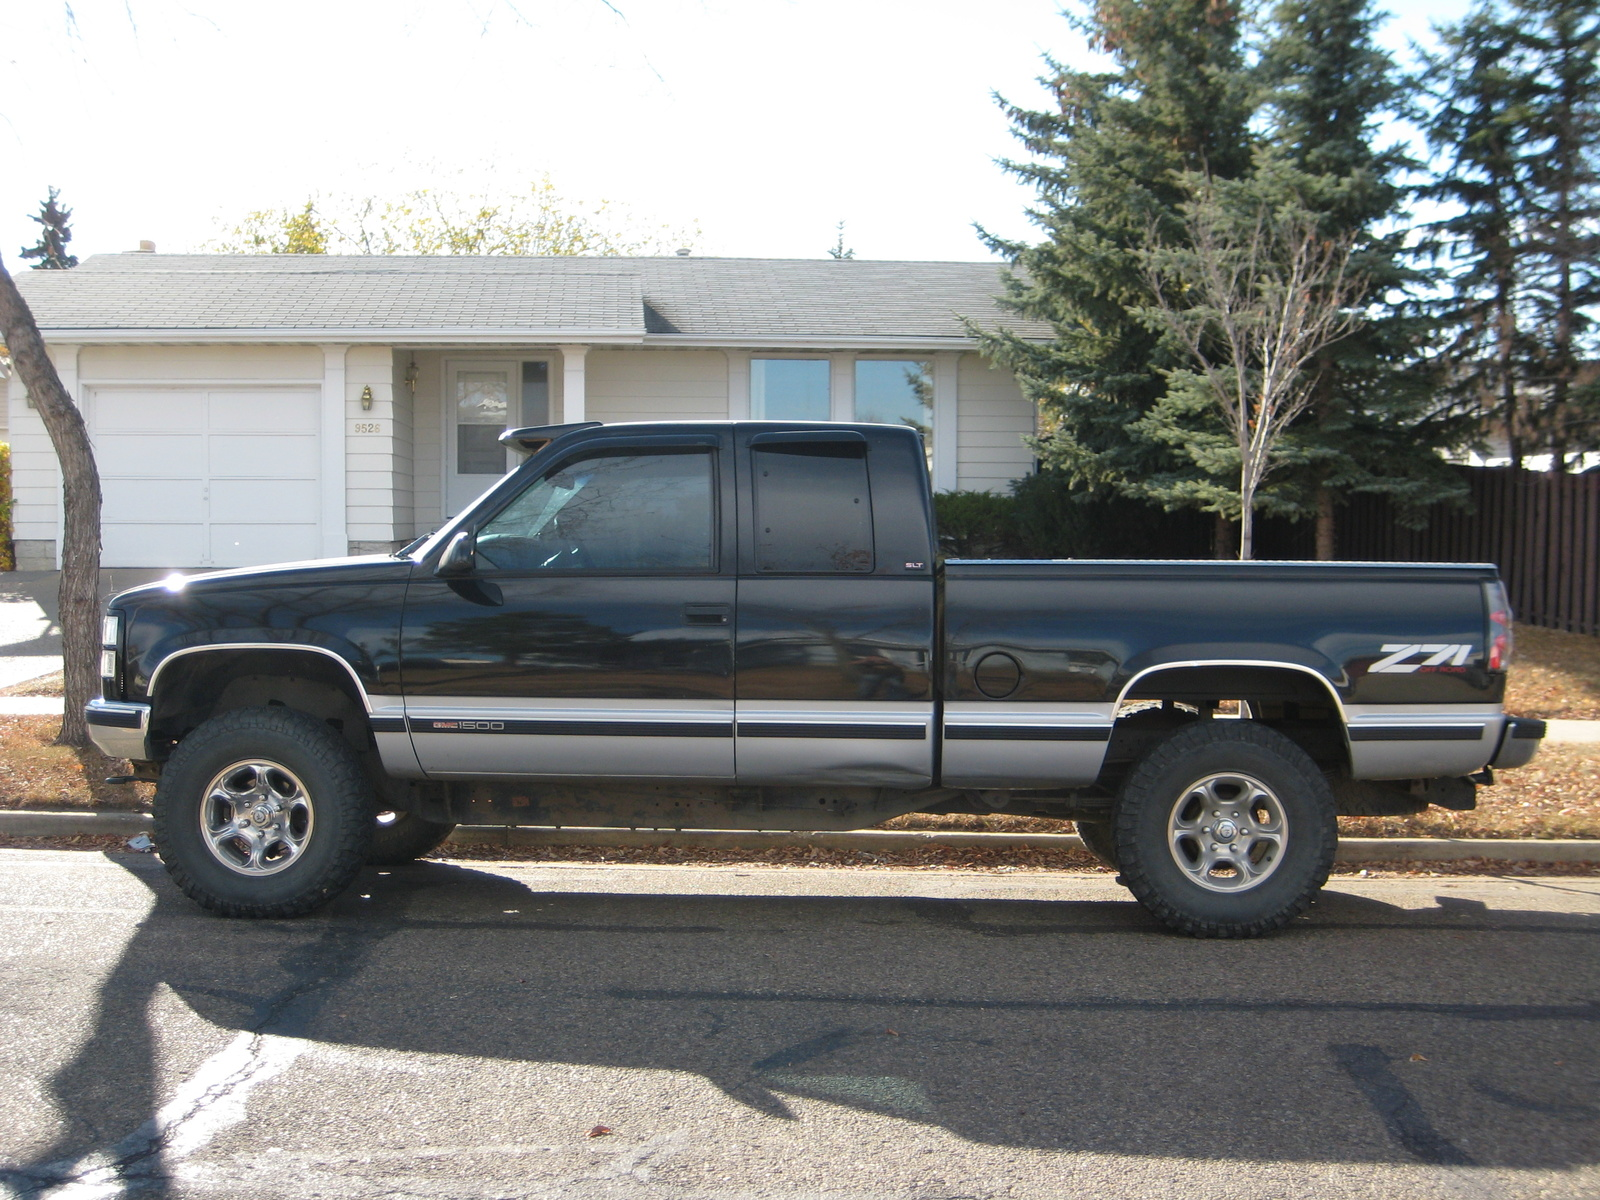 Chevrolet cheyenne 1995 photo - 6